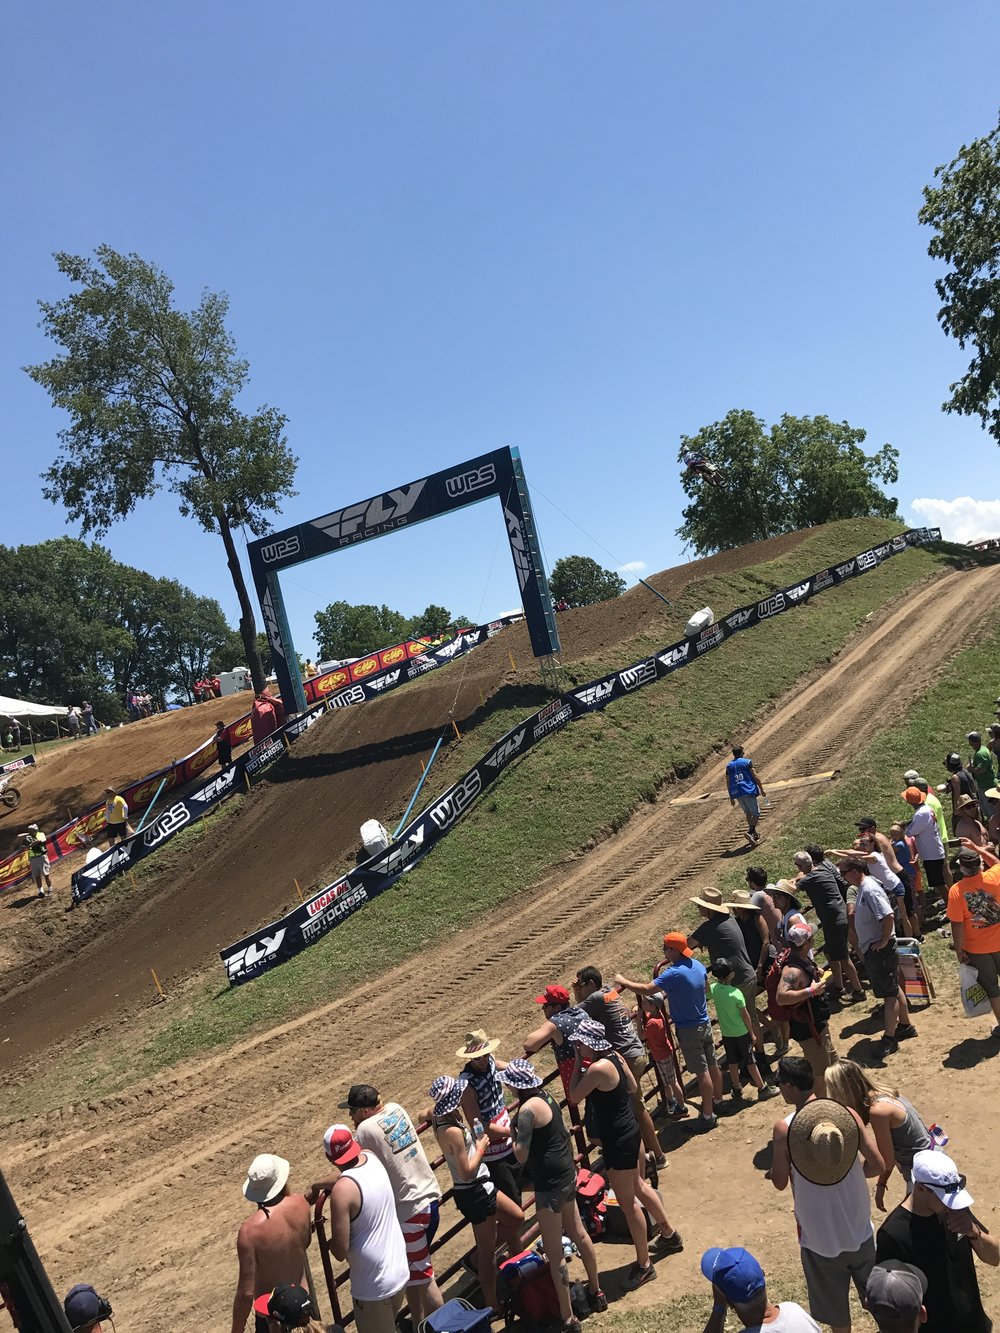 Red Bud MX has some of the most incredible racing action and most beautiful tracks in the world.  Stunning jumps like these are littered all over the course.